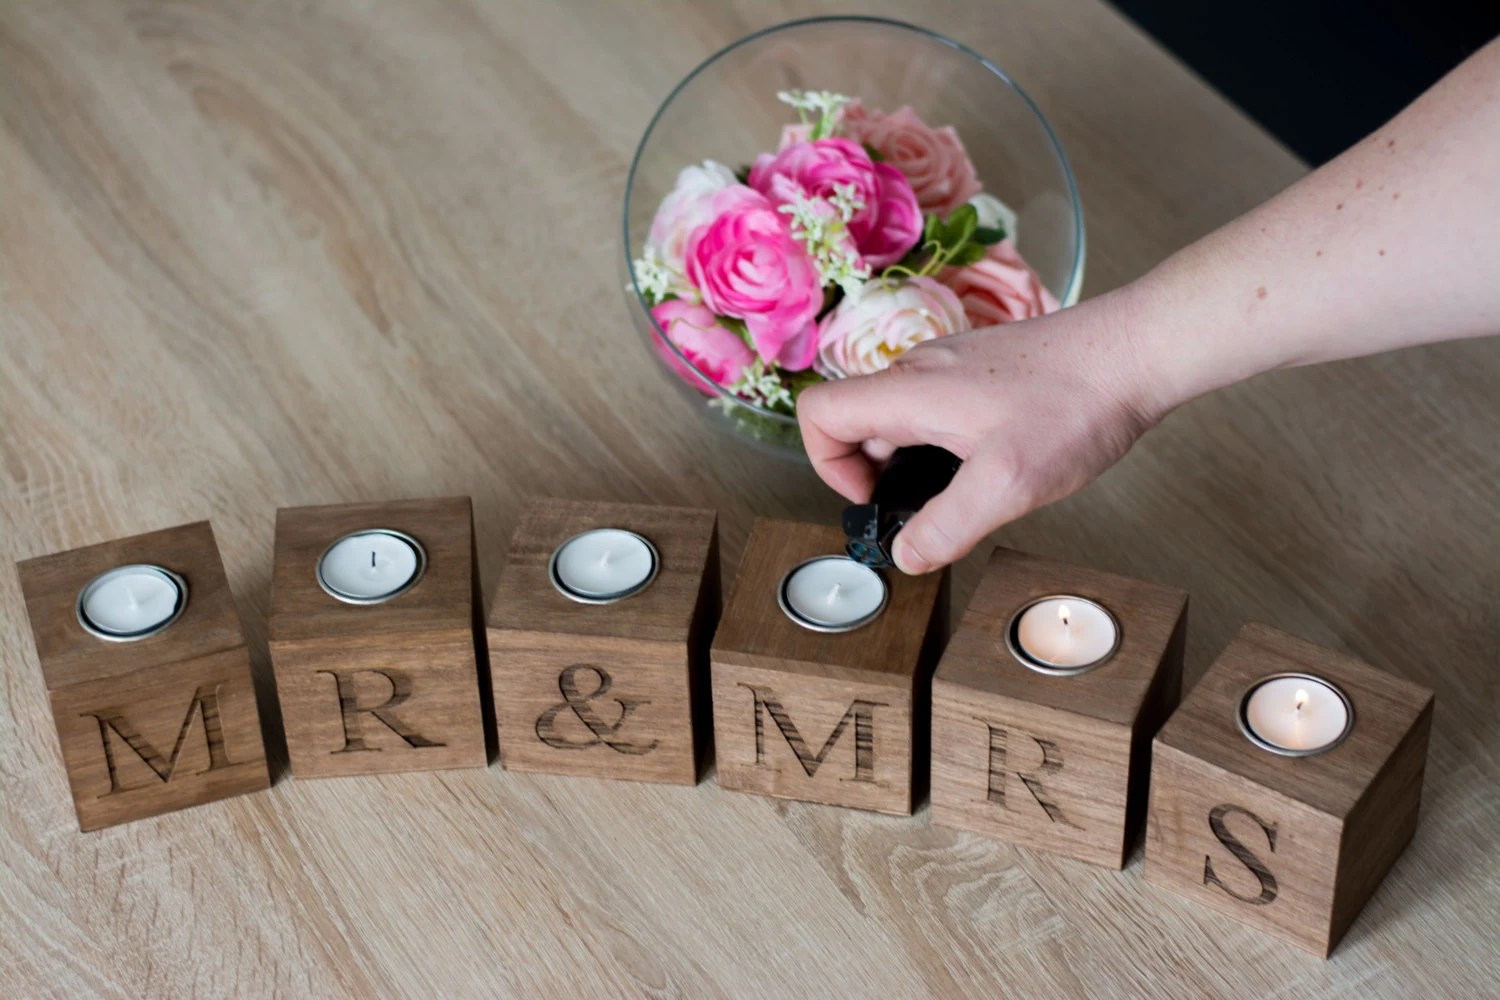 wedding gift wedding gift Mr and Mrs Home decor Wedding Gift for the couple Wooden Rustic Candle Holder Gift the couple Candle Holders Decor cozy Home Gift for bride